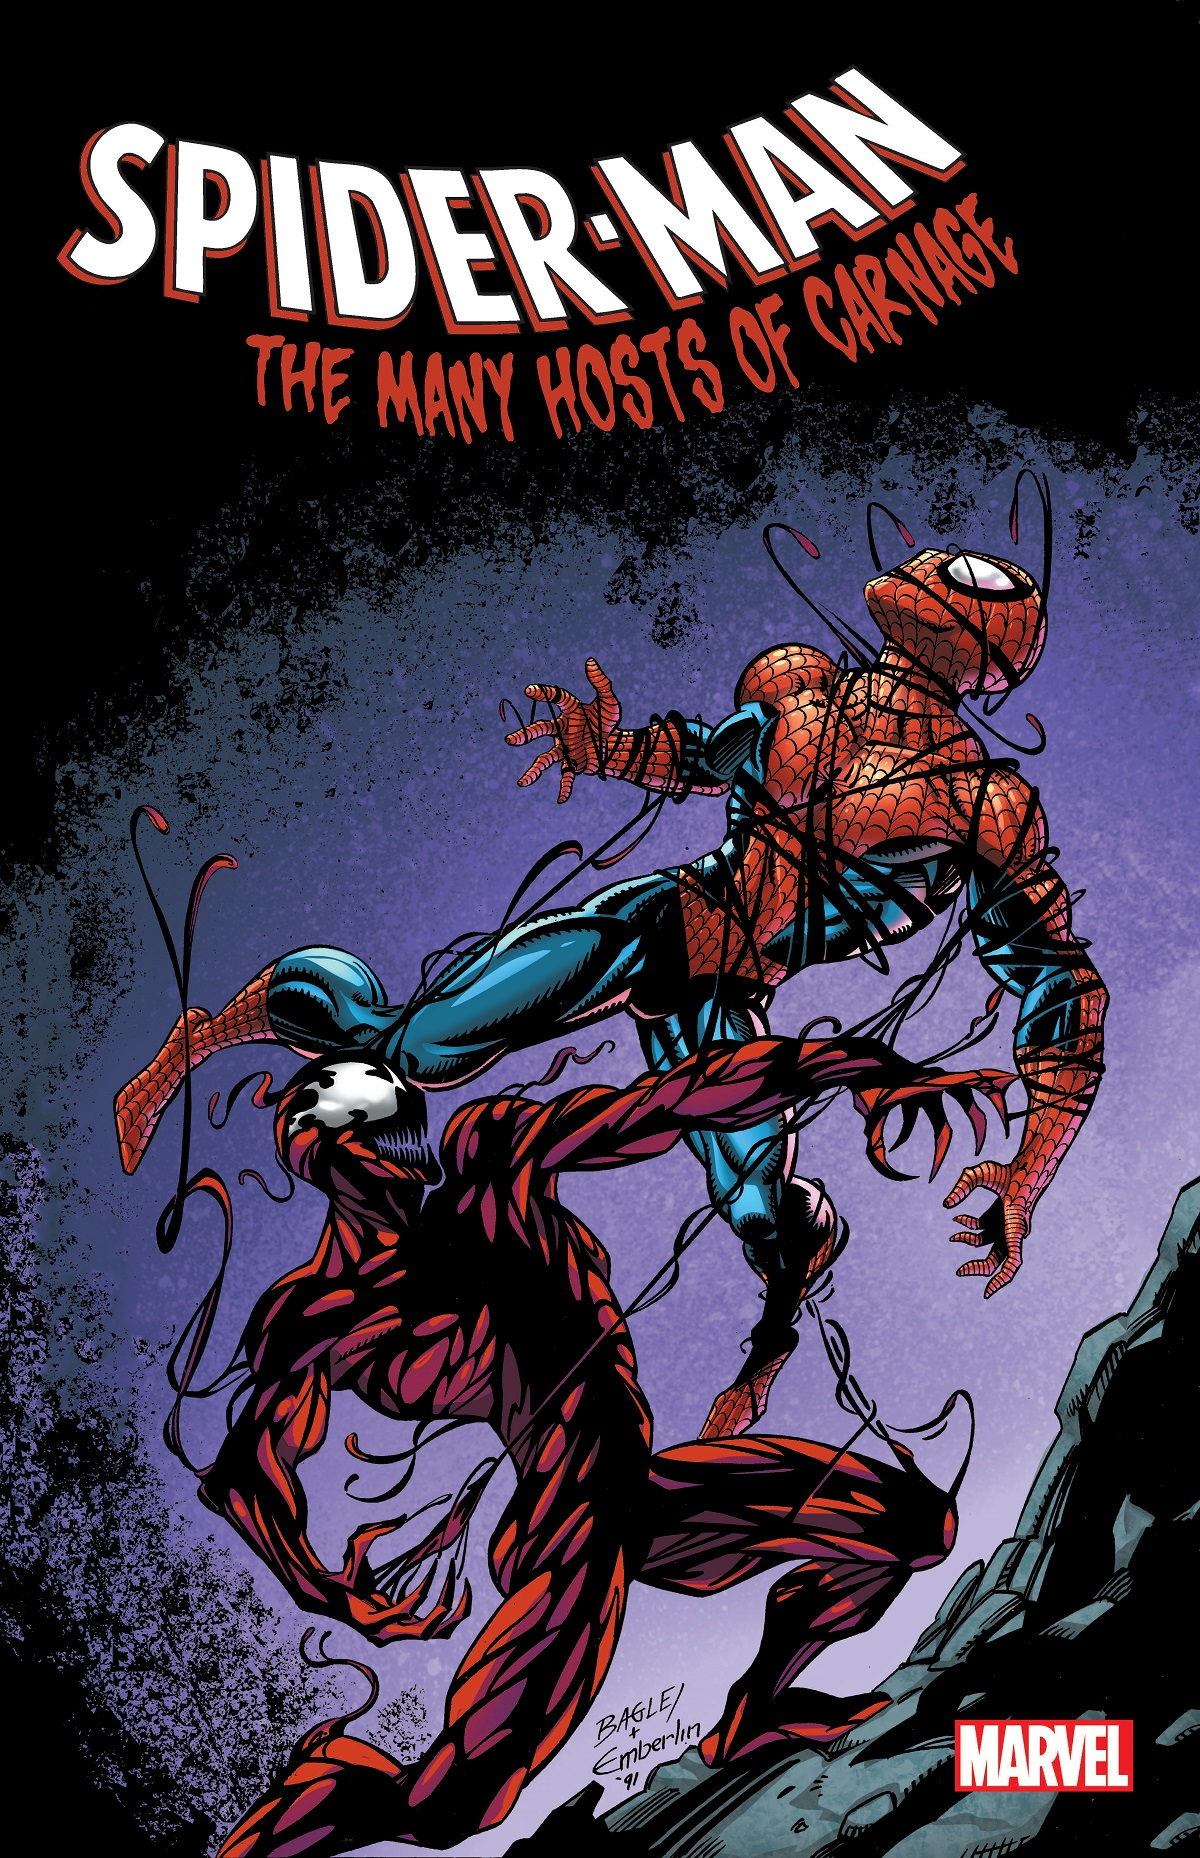 Spider-Man: The Many Hosts Of Carnage (Trade Paperback)